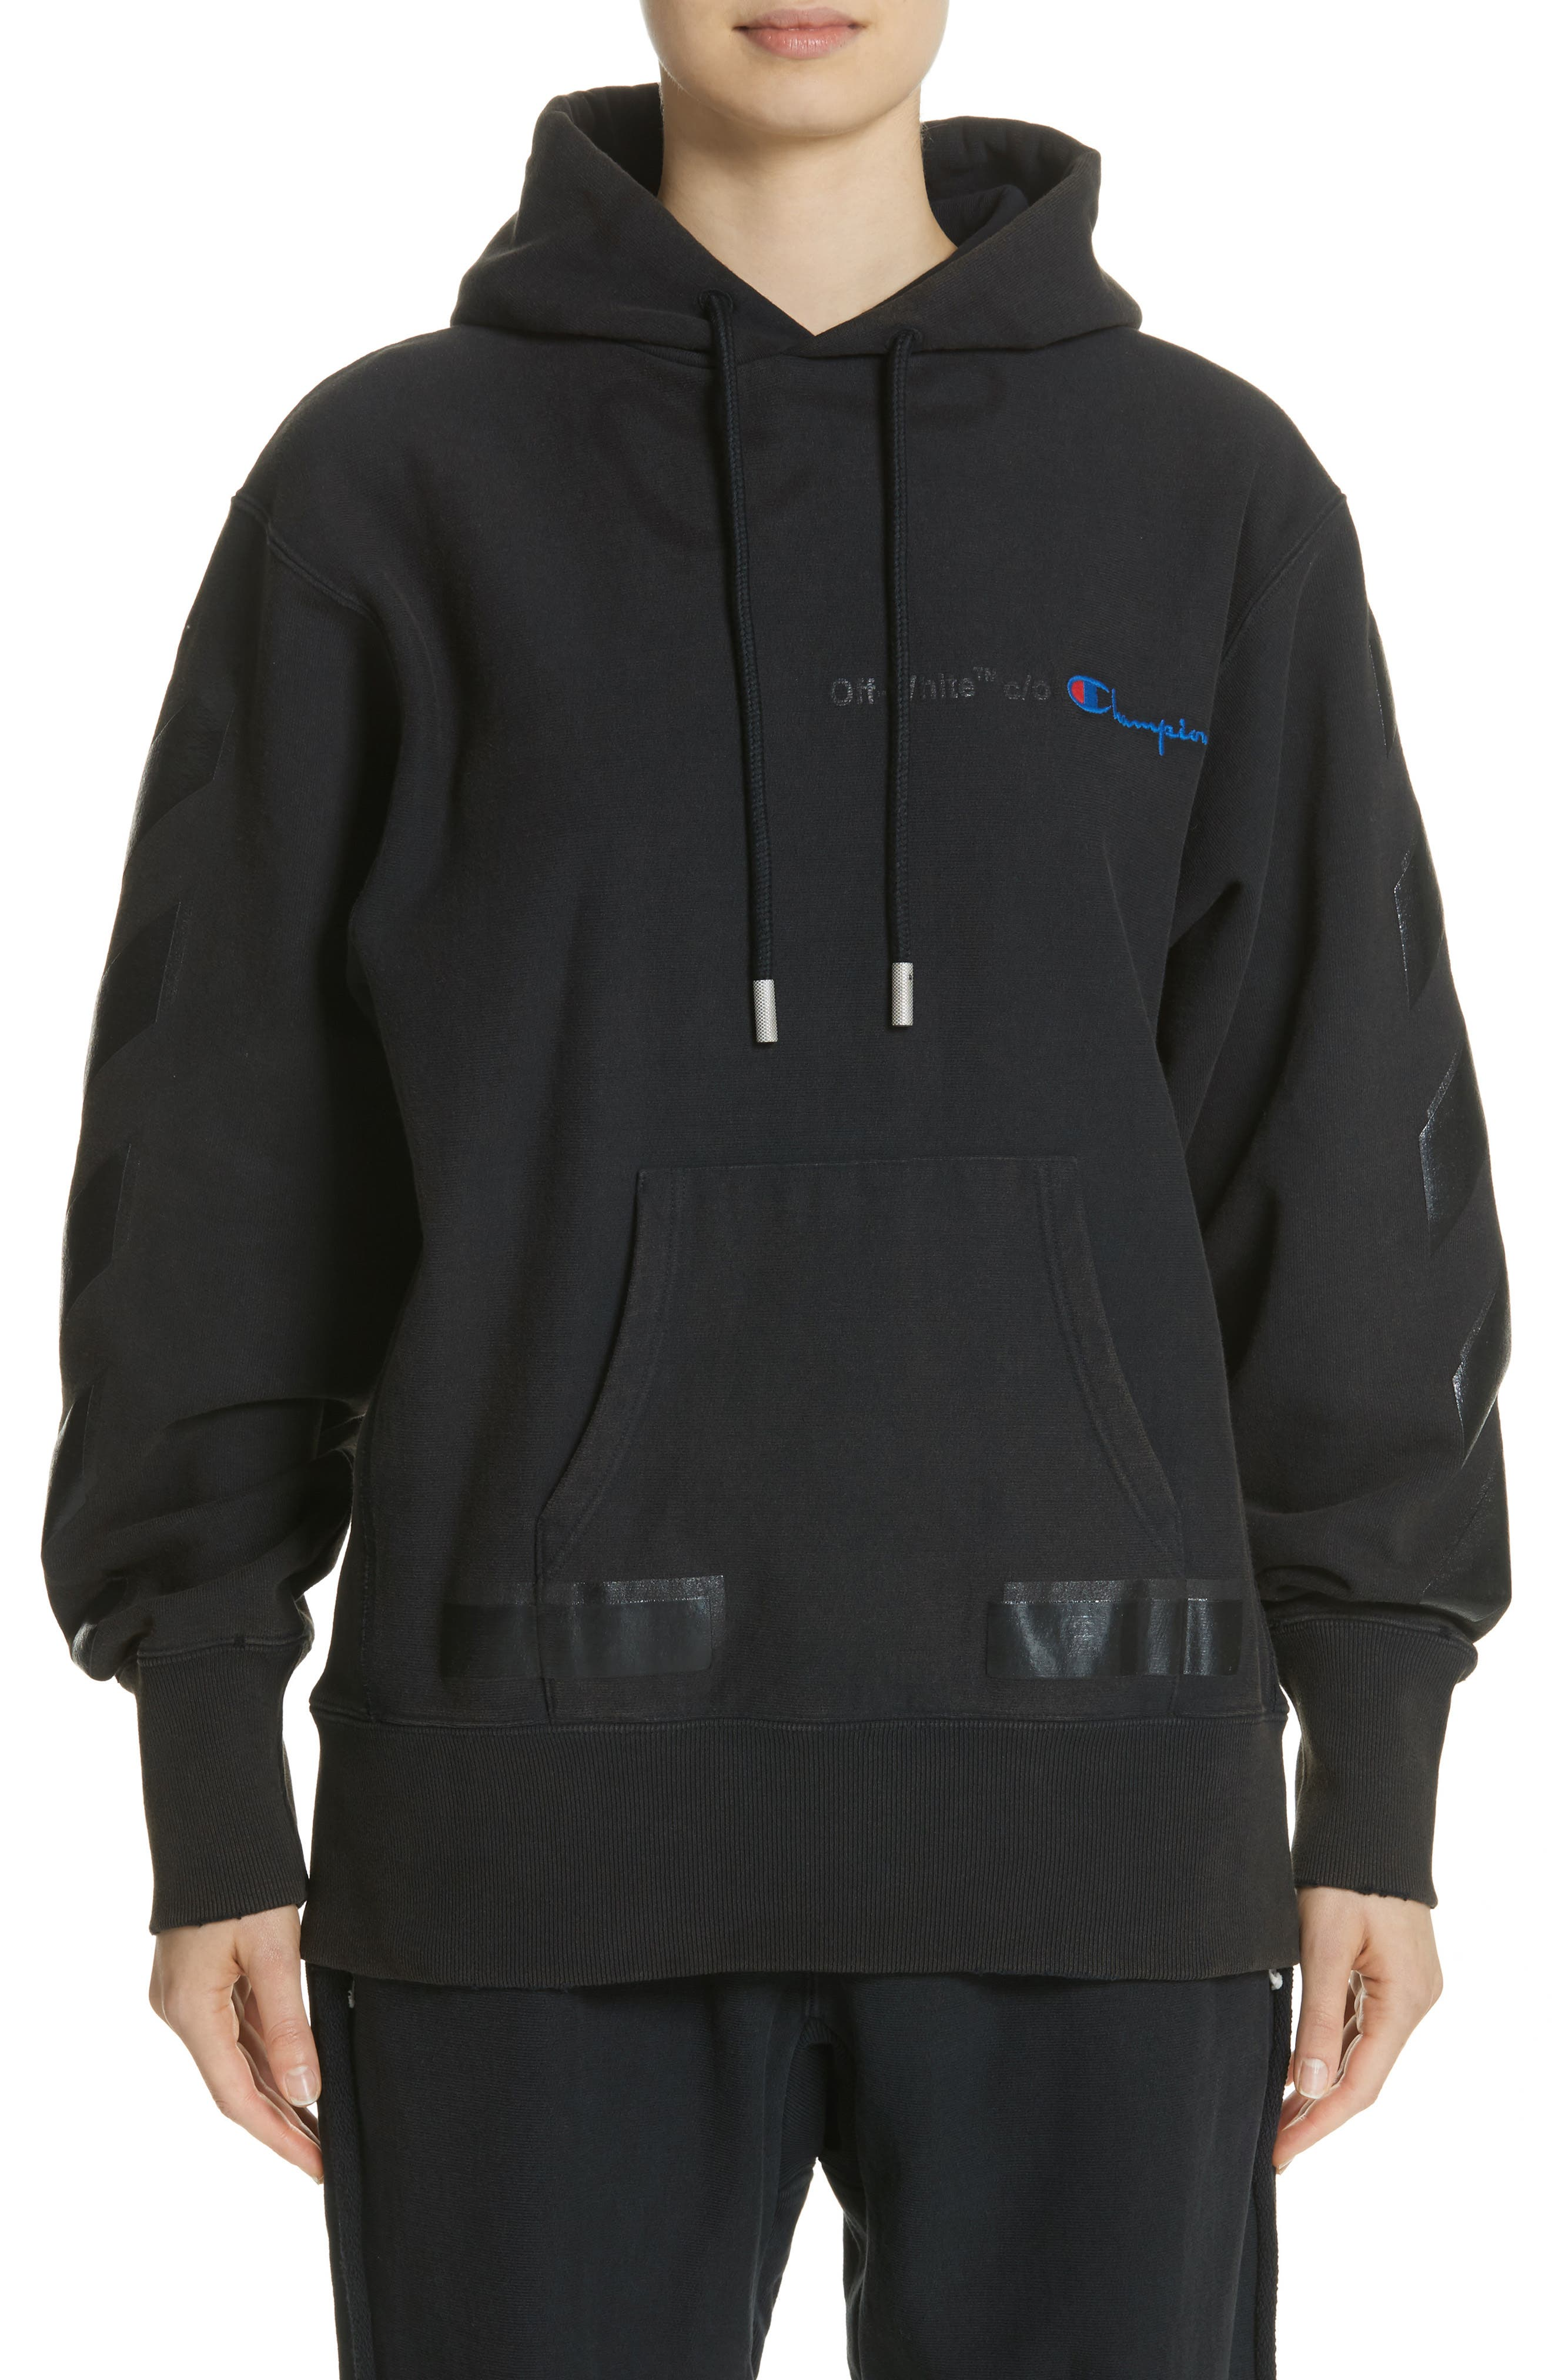 x Champion Pullover Hoodie,                             Main thumbnail 1, color,                             001